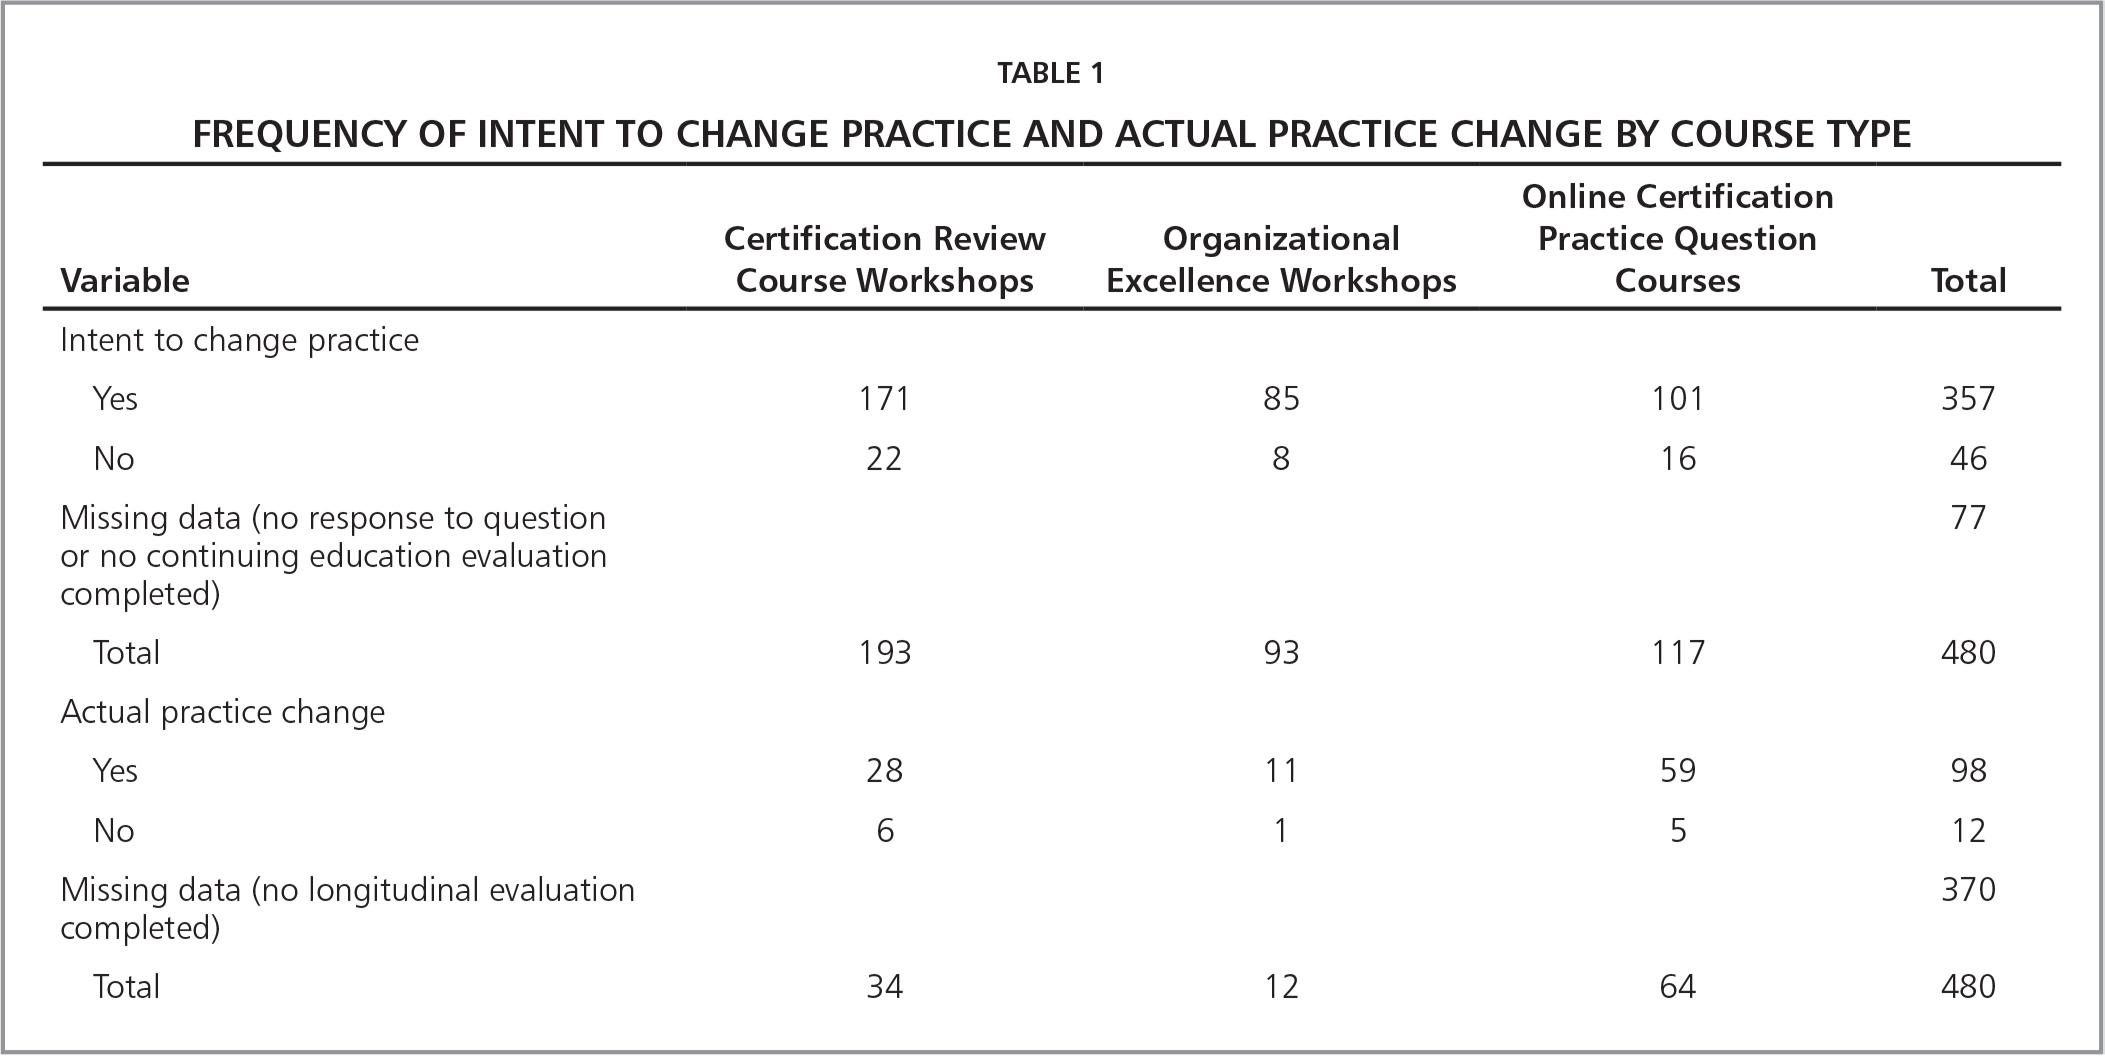 Frequency of Intent to Change Practice and Actual Practice Change by Course Type